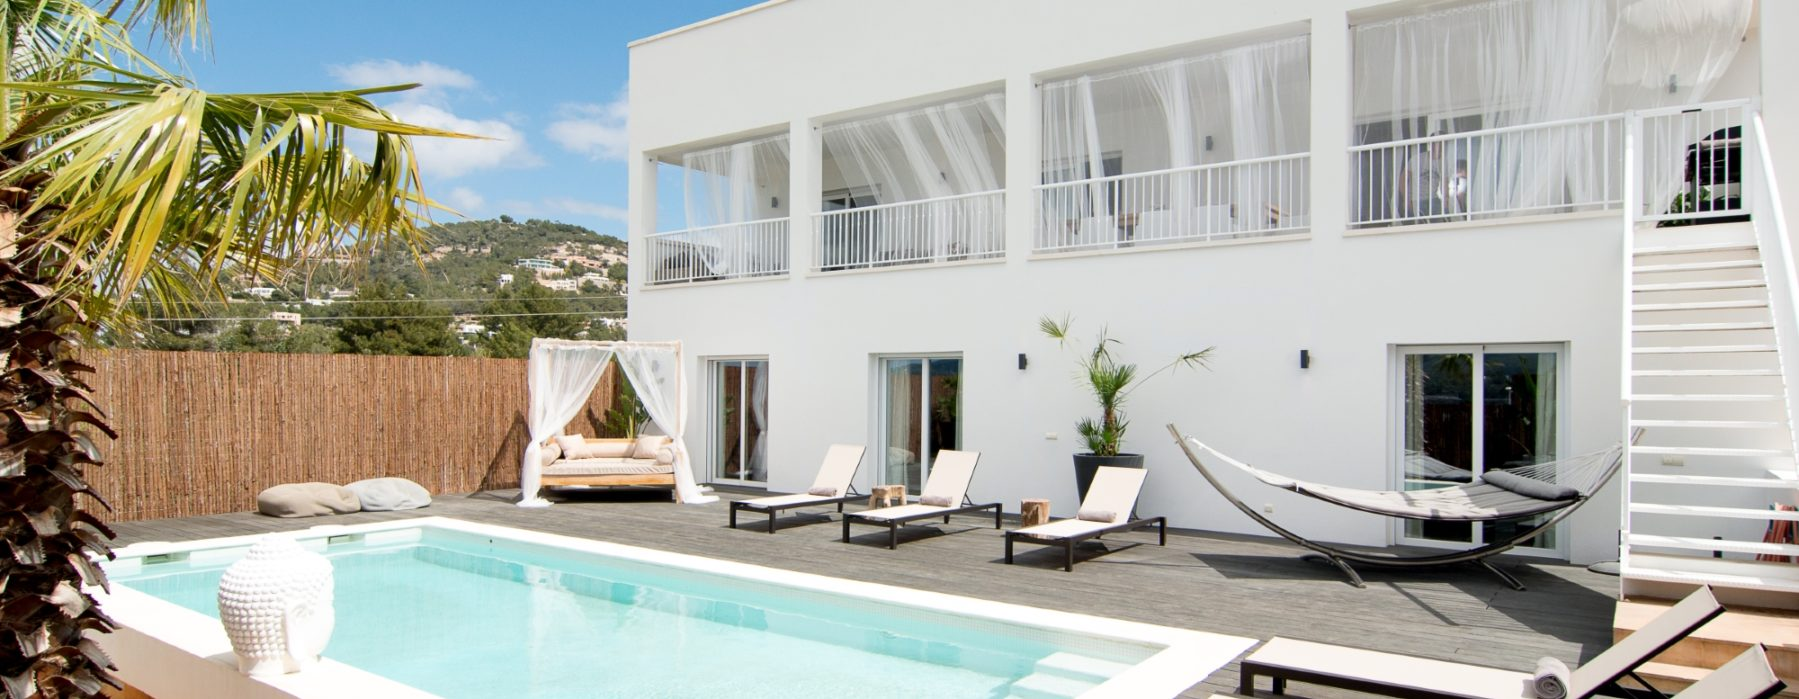 4 Bedroom Villa near Ibiza Town to rent